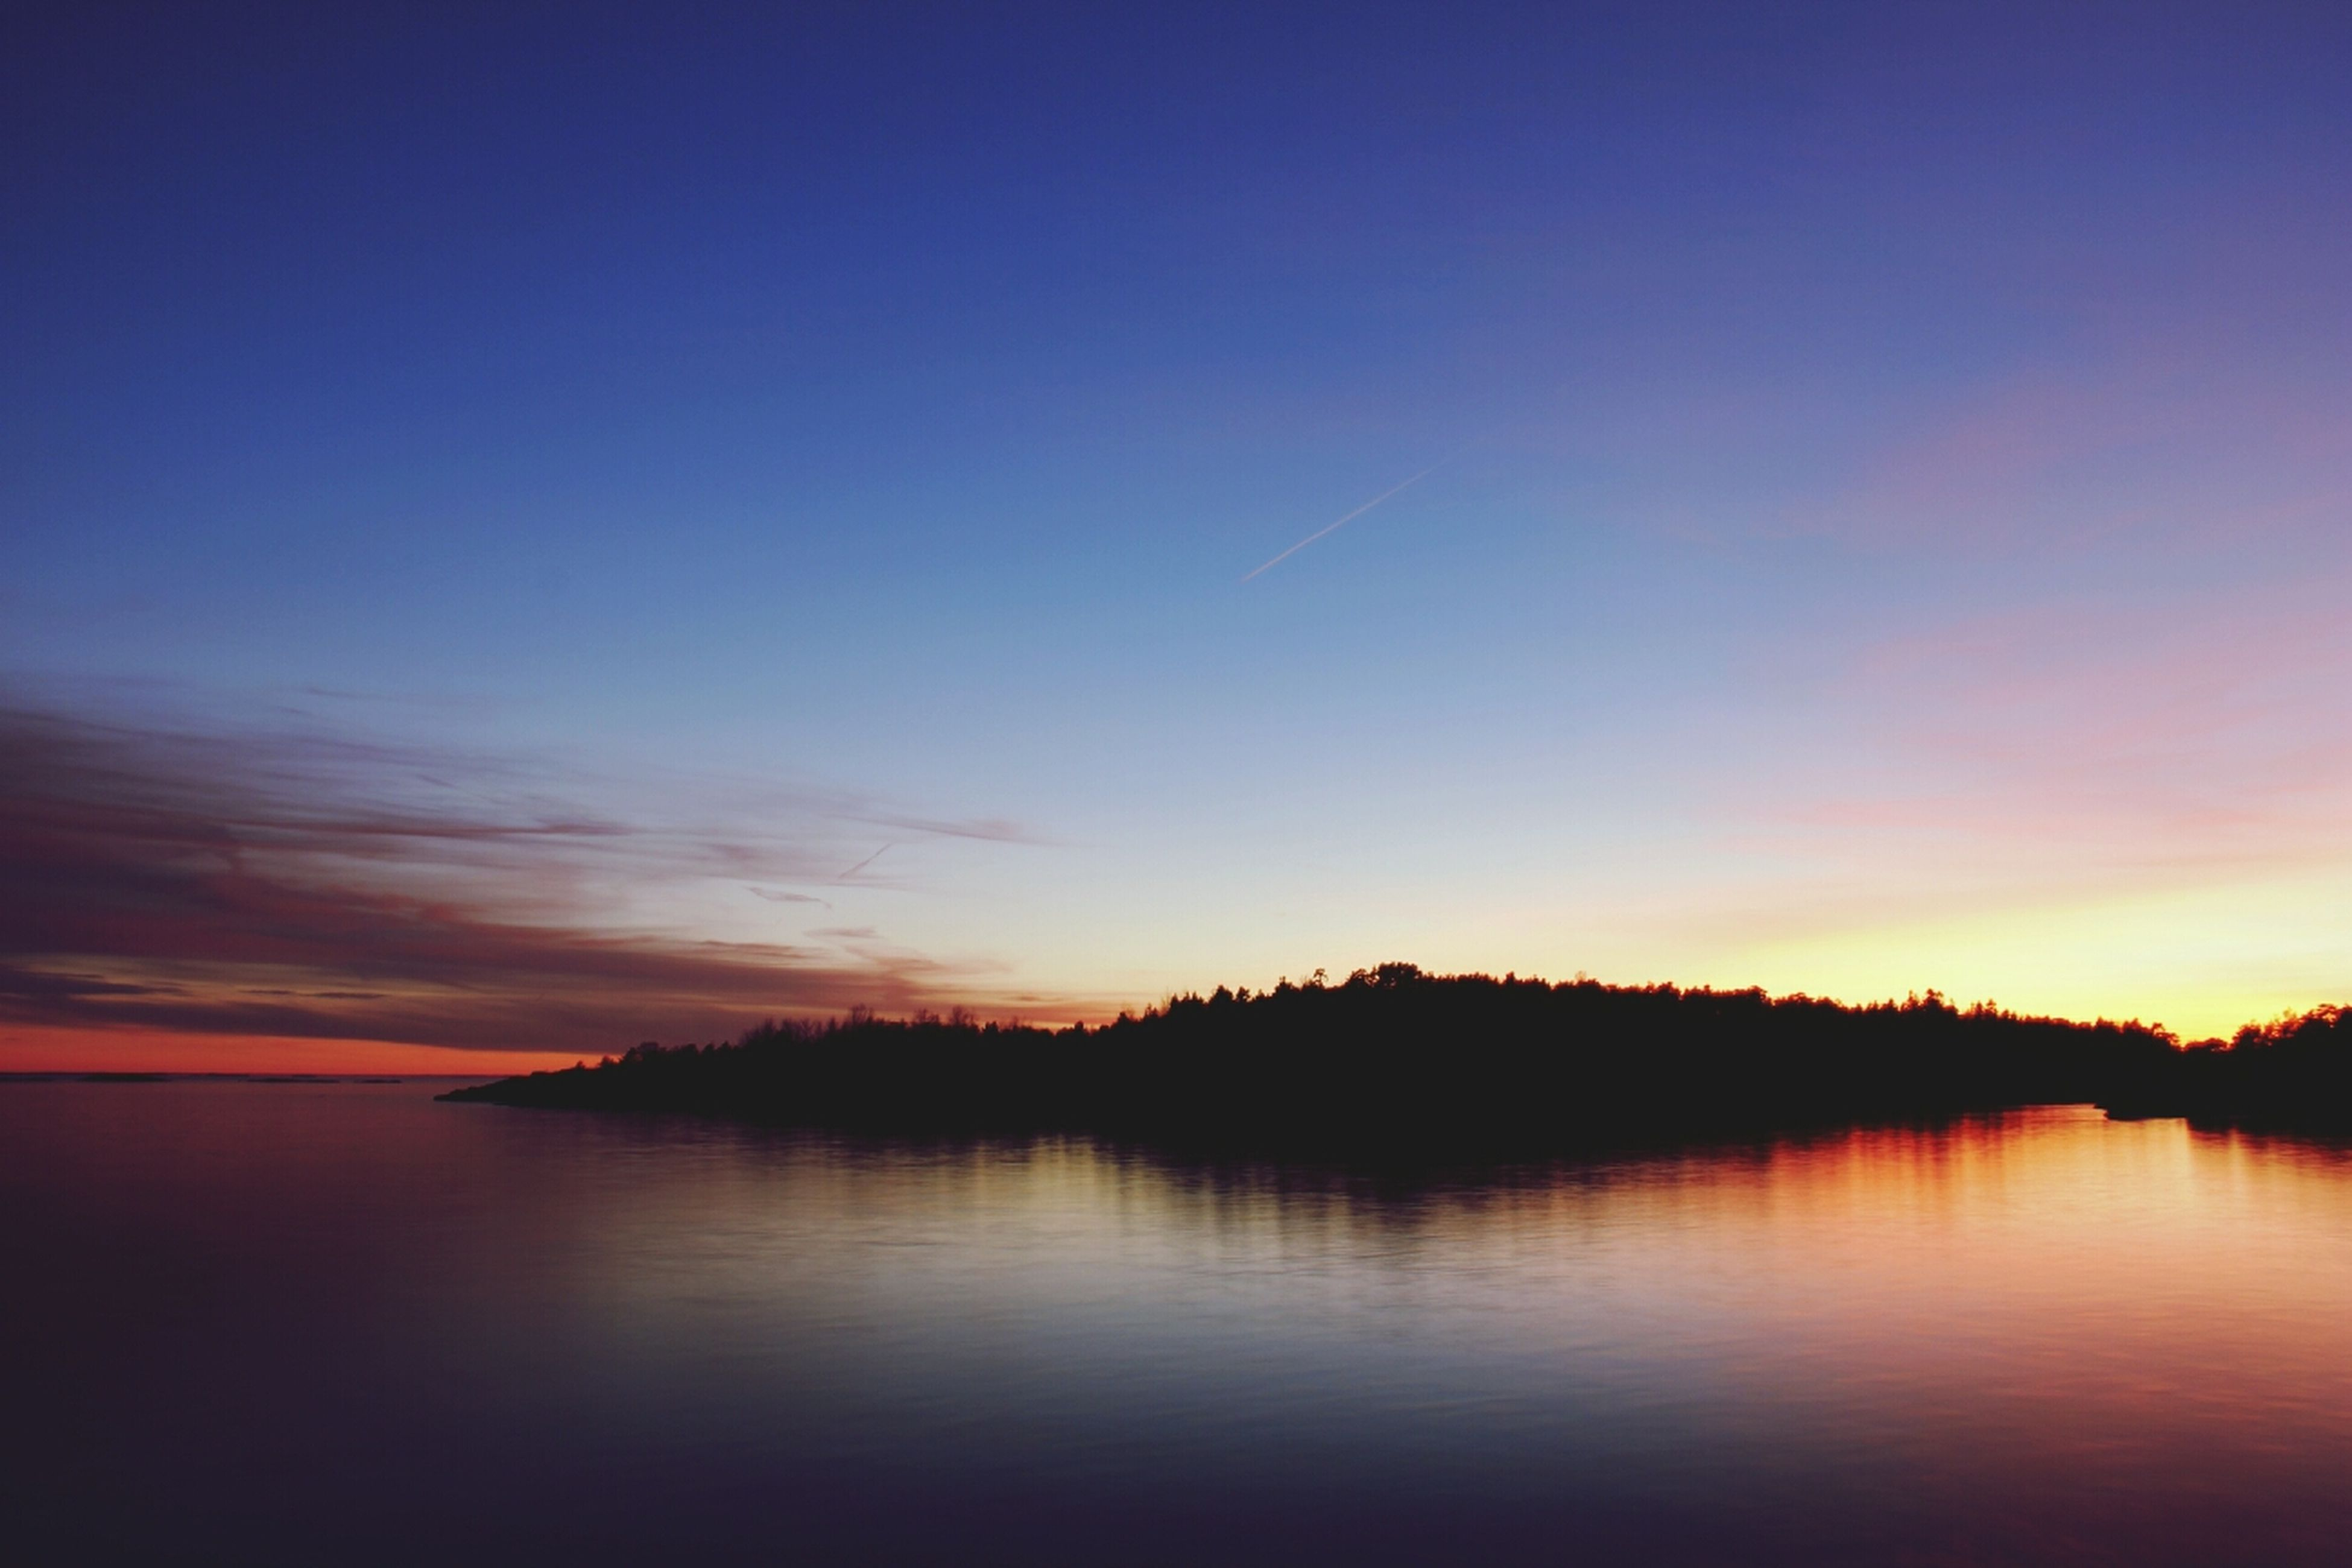 sunset, water, tranquil scene, scenics, tranquility, beauty in nature, waterfront, reflection, lake, sky, idyllic, orange color, nature, silhouette, sea, calm, copy space, dusk, blue, outdoors